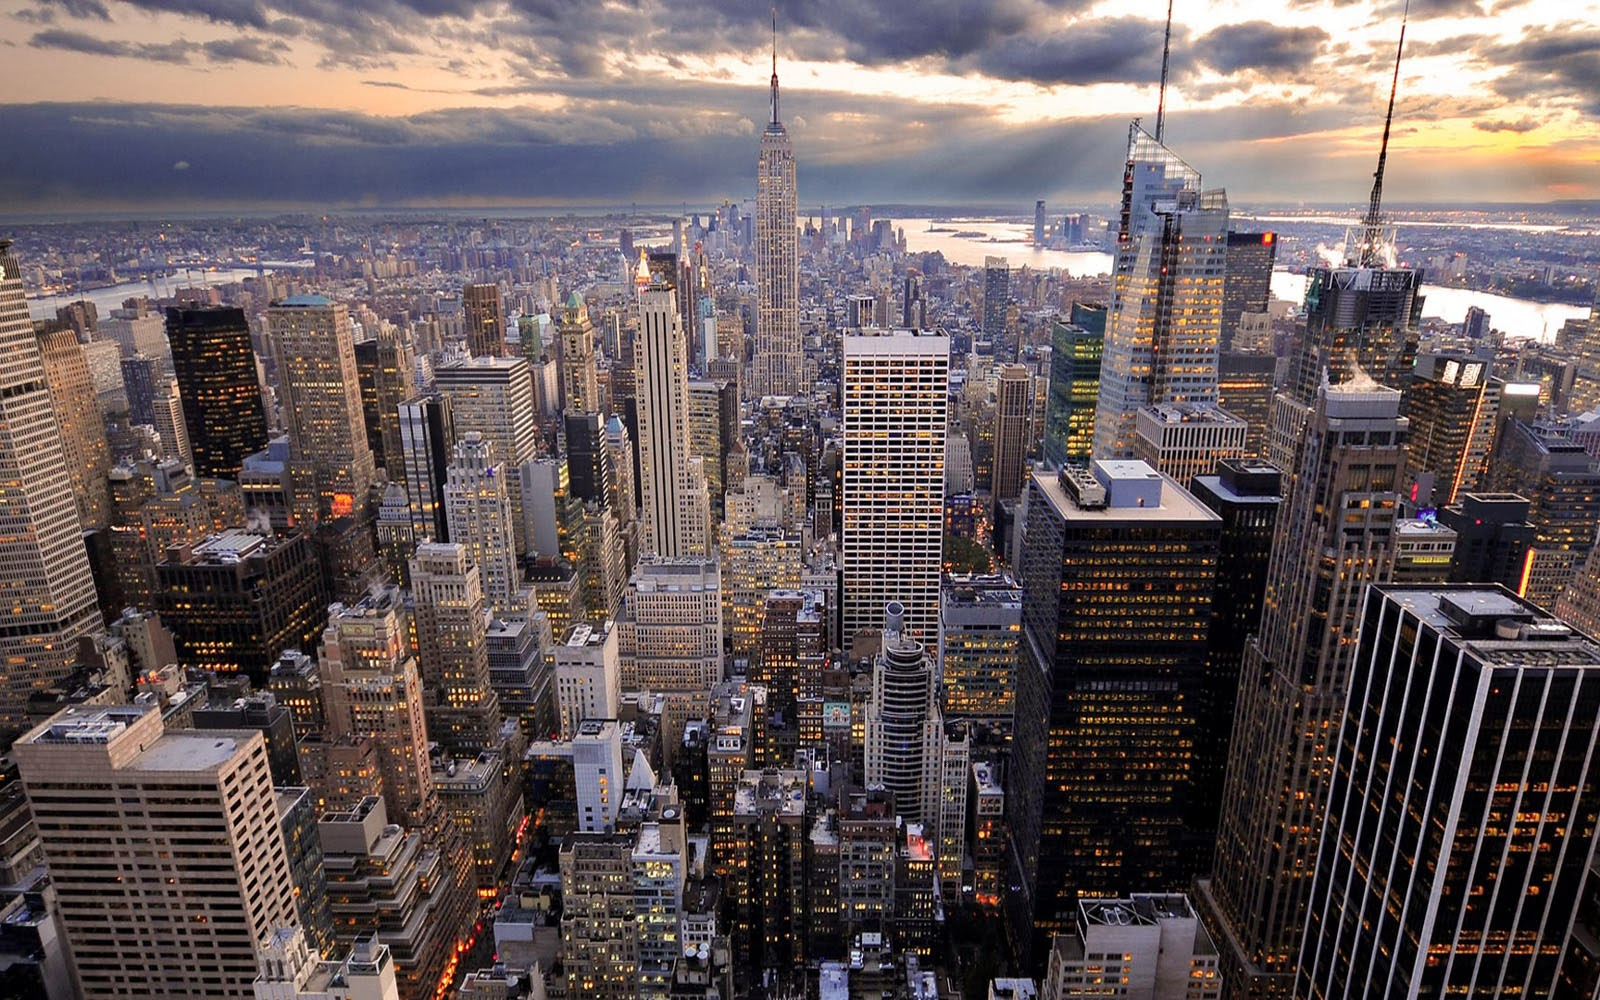 Google Image Cute Wallpapers Wallpapers New York City Wallpapers